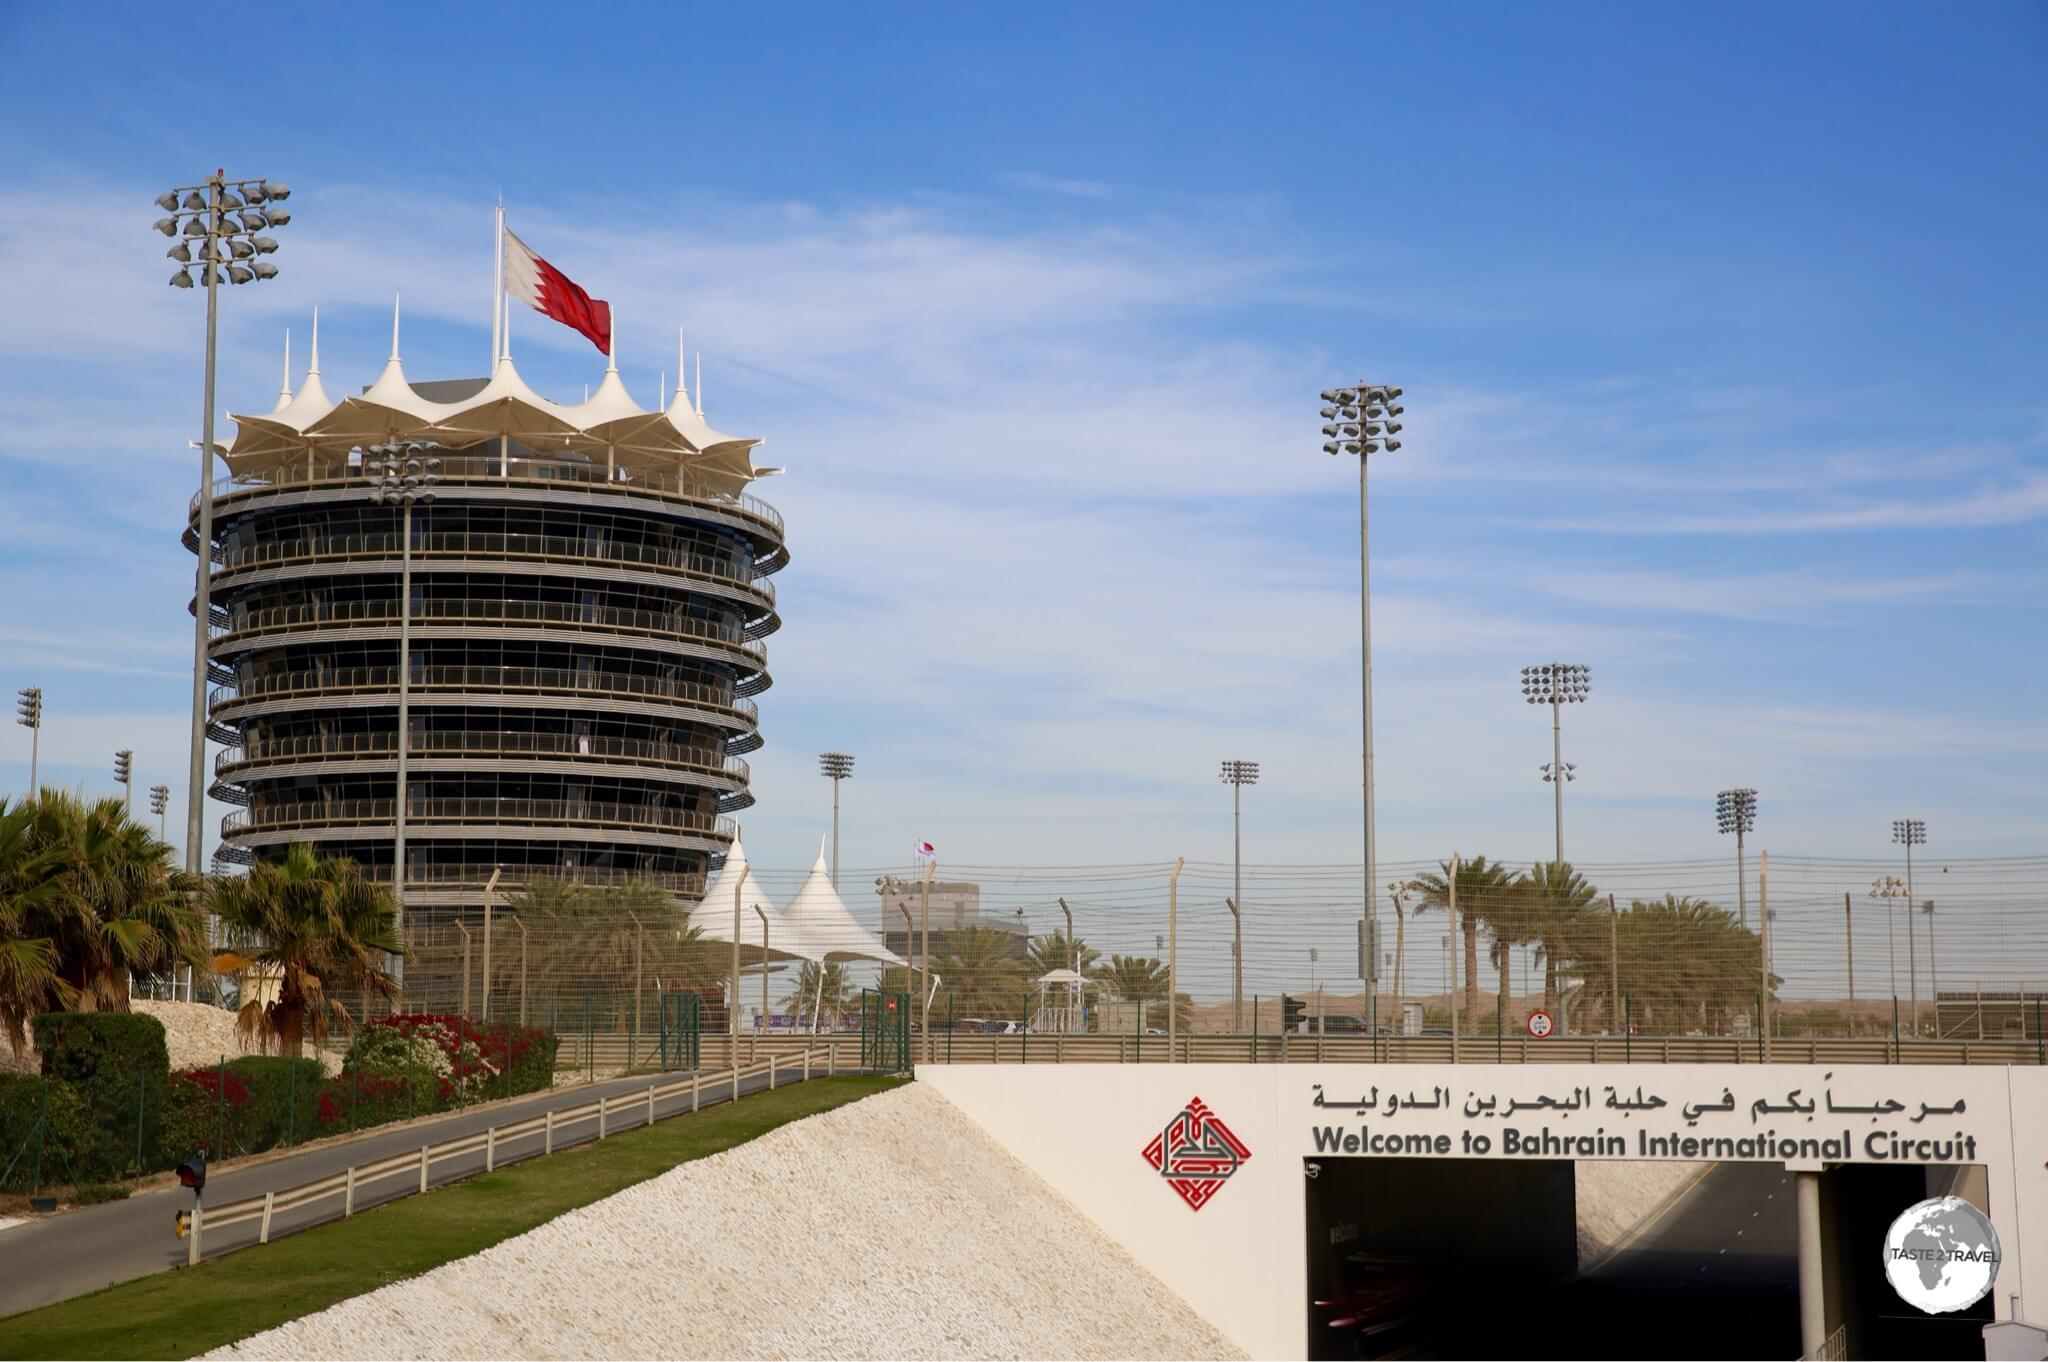 The entrance to Bahrain International Circuit.